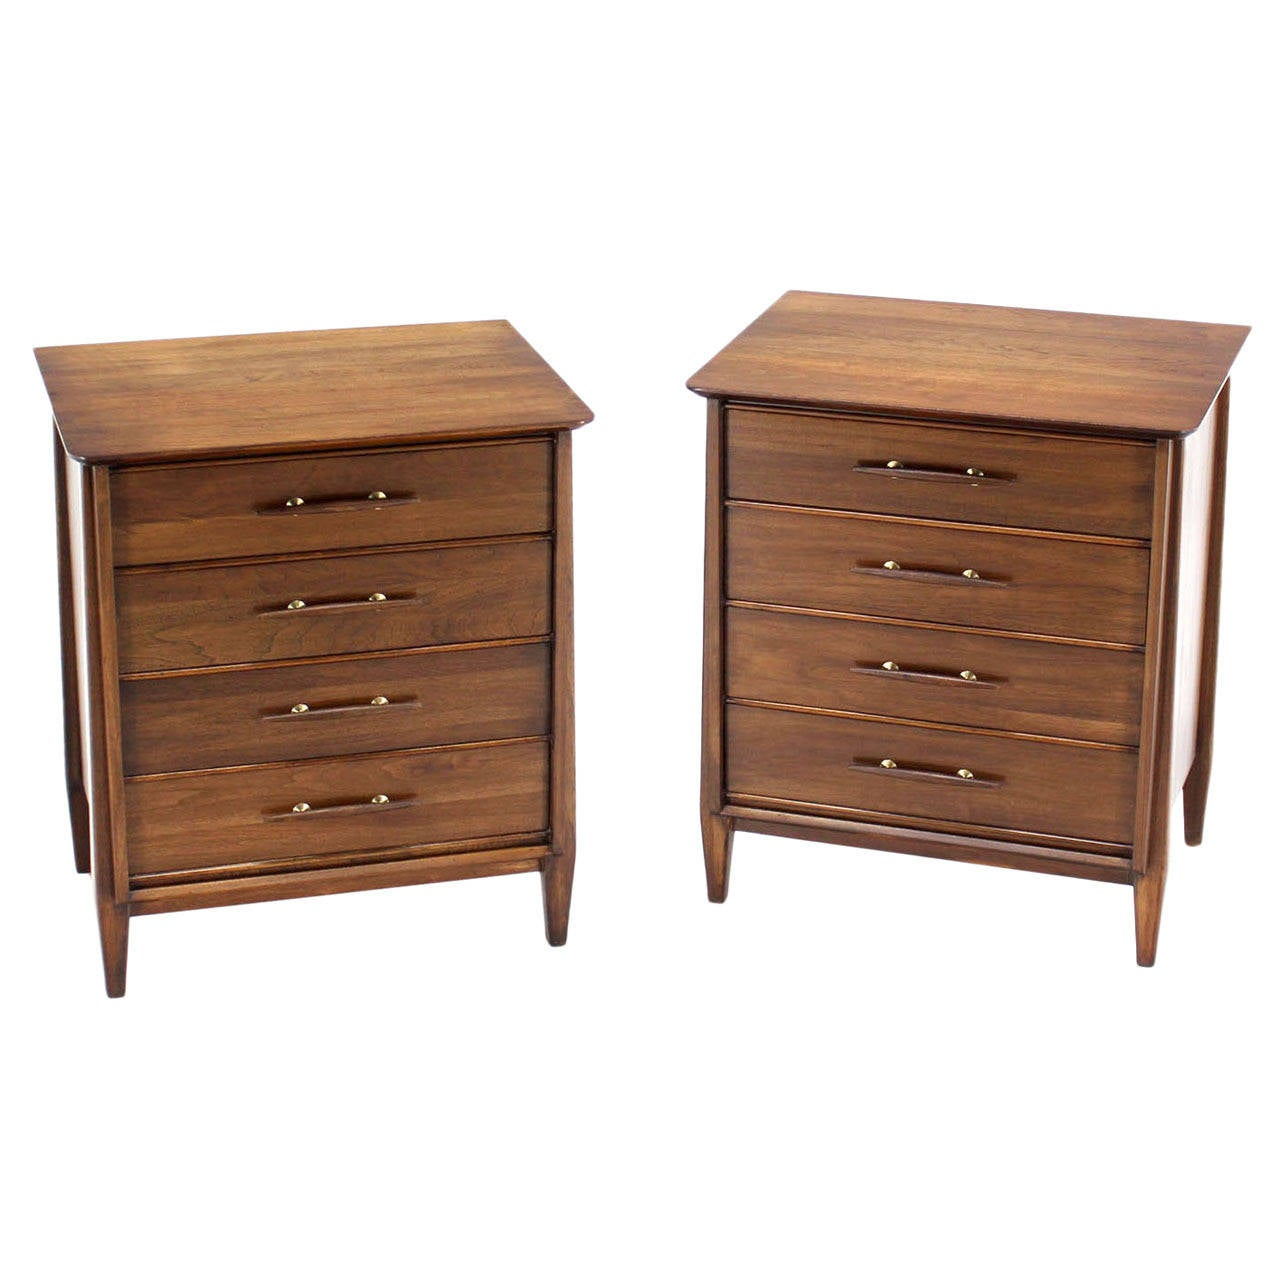 #412418  Of Mid Century Modern Walnut Bachelor Chests Or Dressers At 1stdibs with 1280x1280 px of Recommended Bachelor Chest Dresser 12801280 save image @ avoidforclosure.info